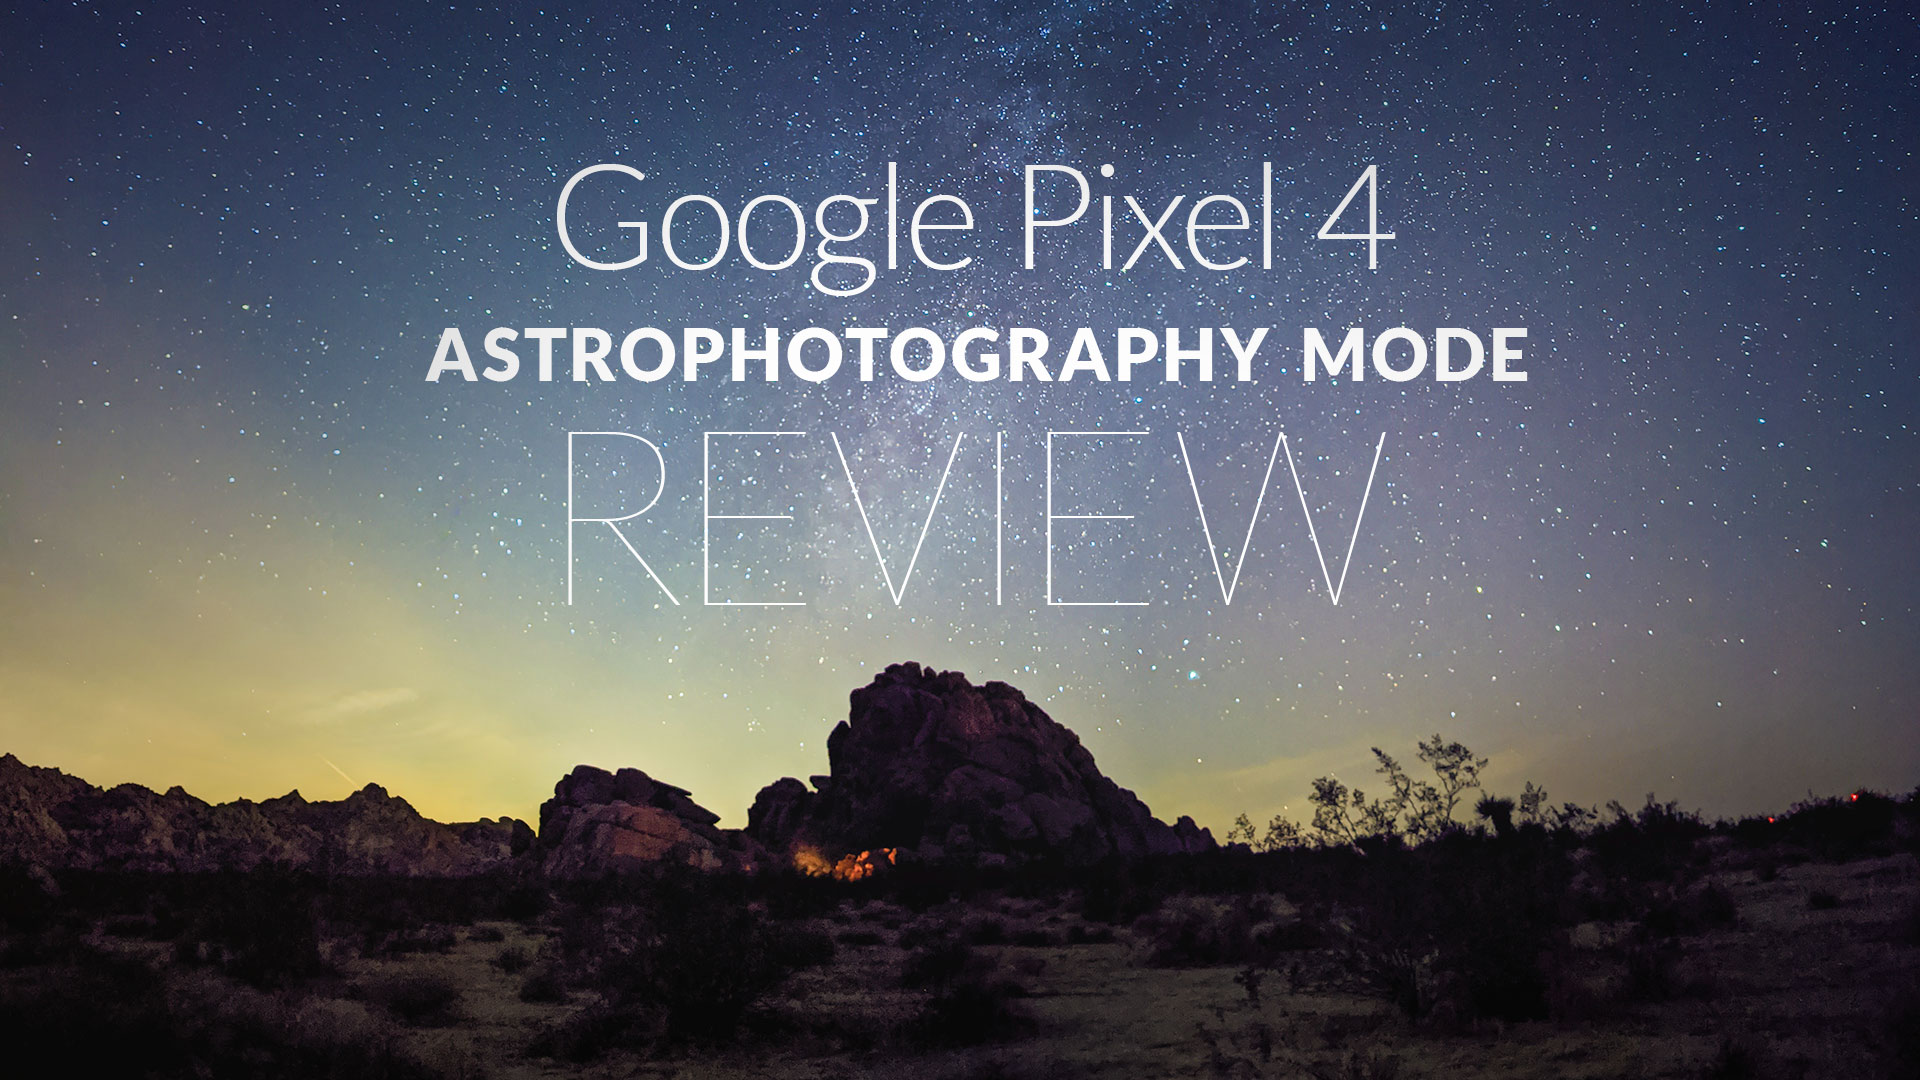 Google Pixel 4 Astrophotography Mode Review